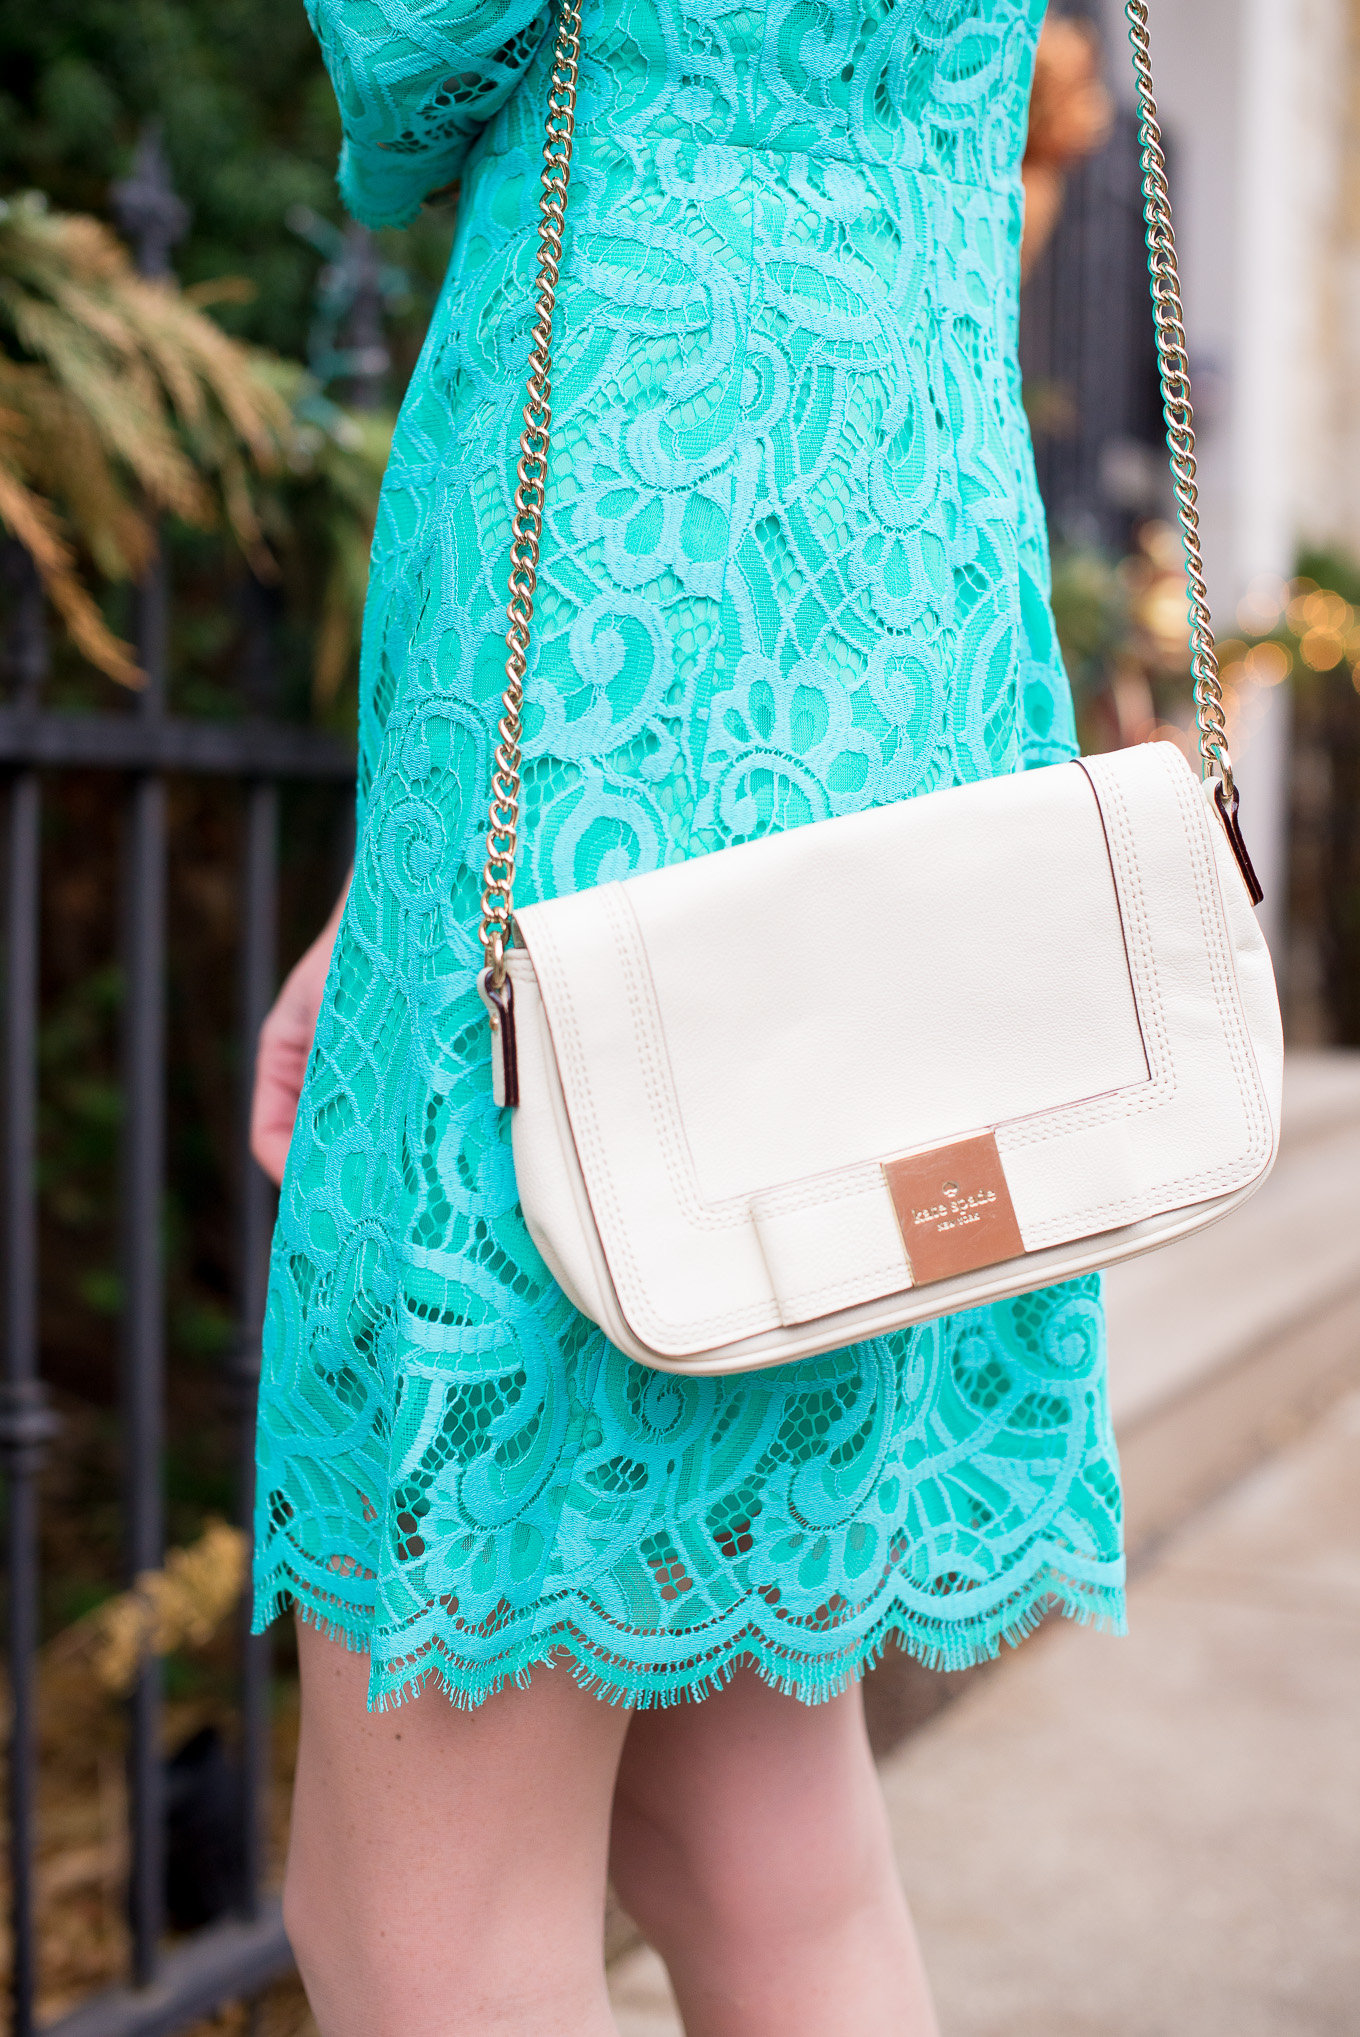 Lilly-Pulitzer-Lace-Dress-13